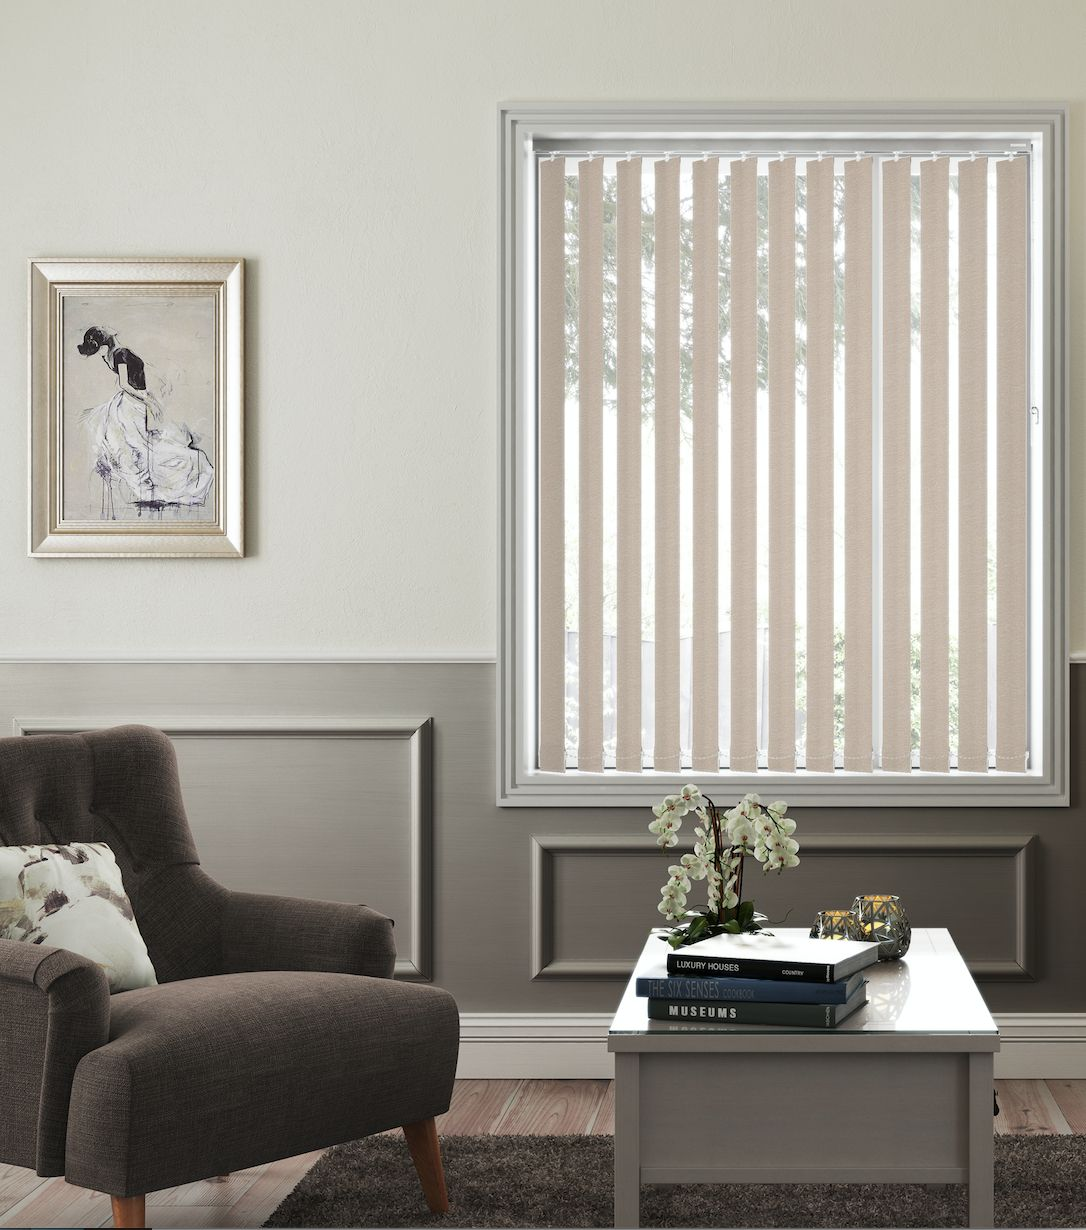 12 Smart Initiatives Of How To Improve Modern Bedroom Blinds Blinds For Windows Curtains With Blinds Blinds